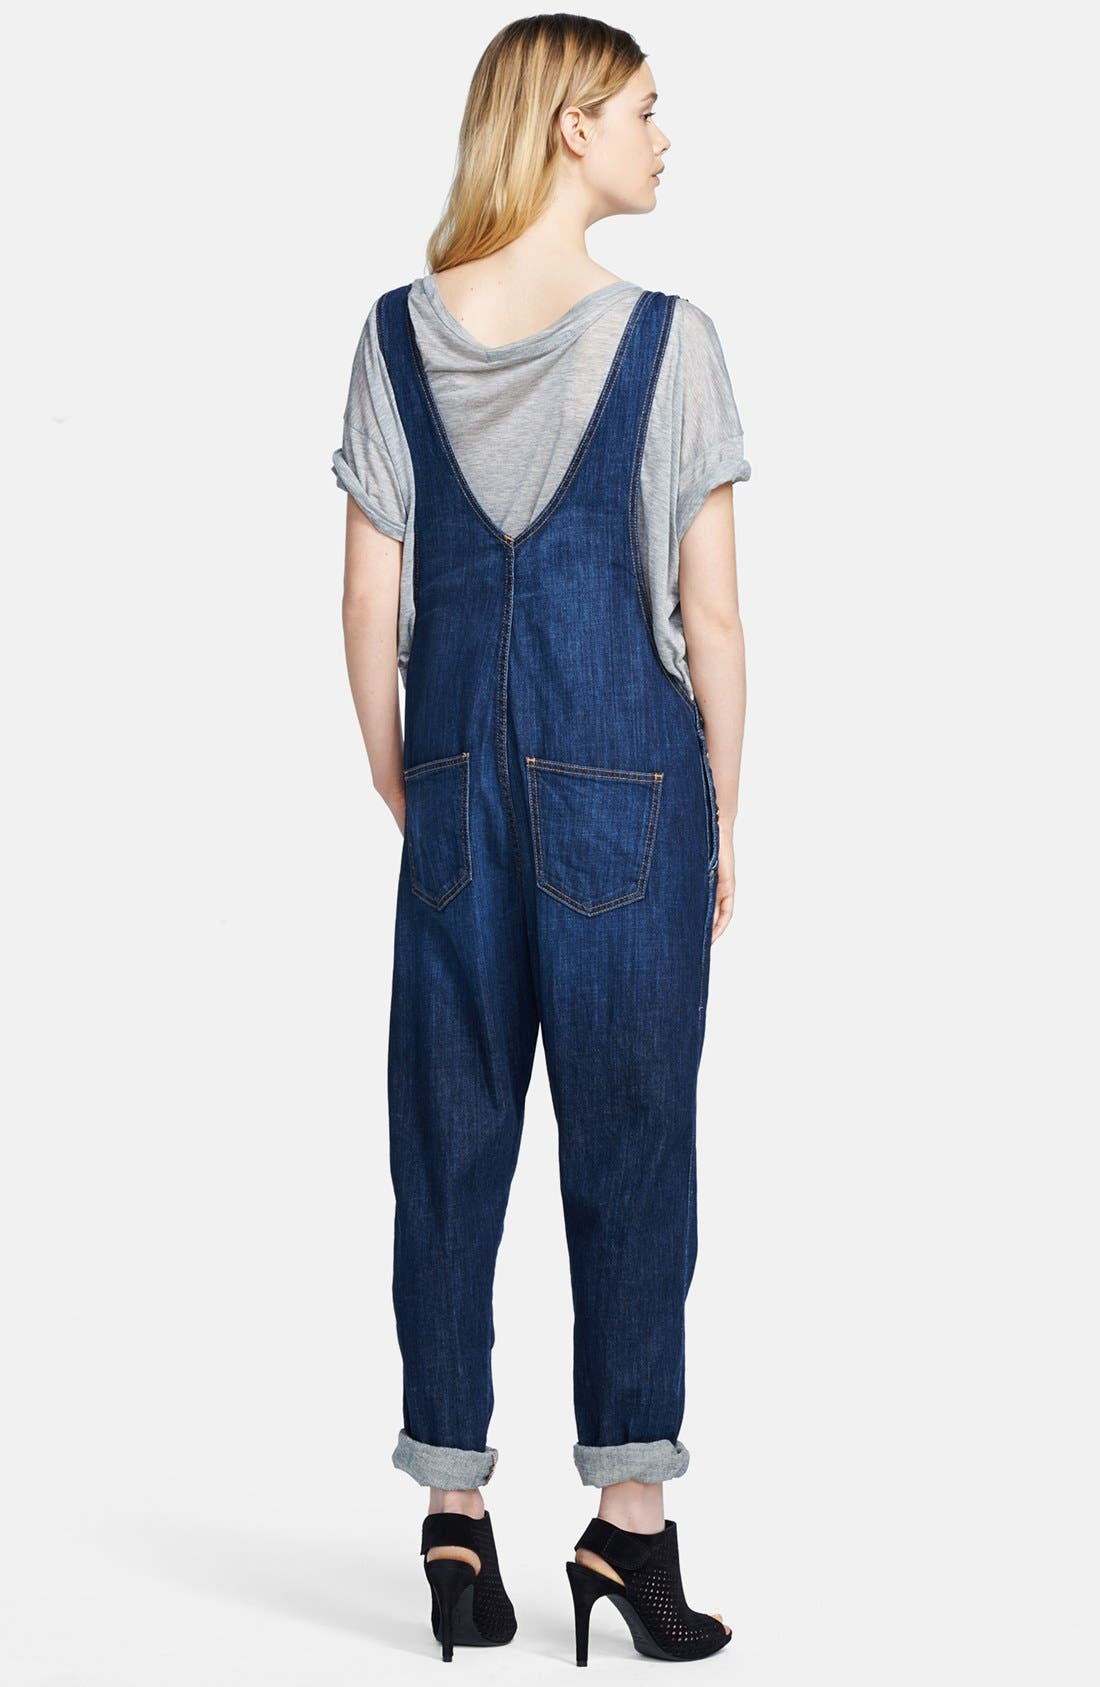 CURRENT/ELLIOTT,                             'The Ranch Hand' Overalls,                             Alternate thumbnail 2, color,                             464